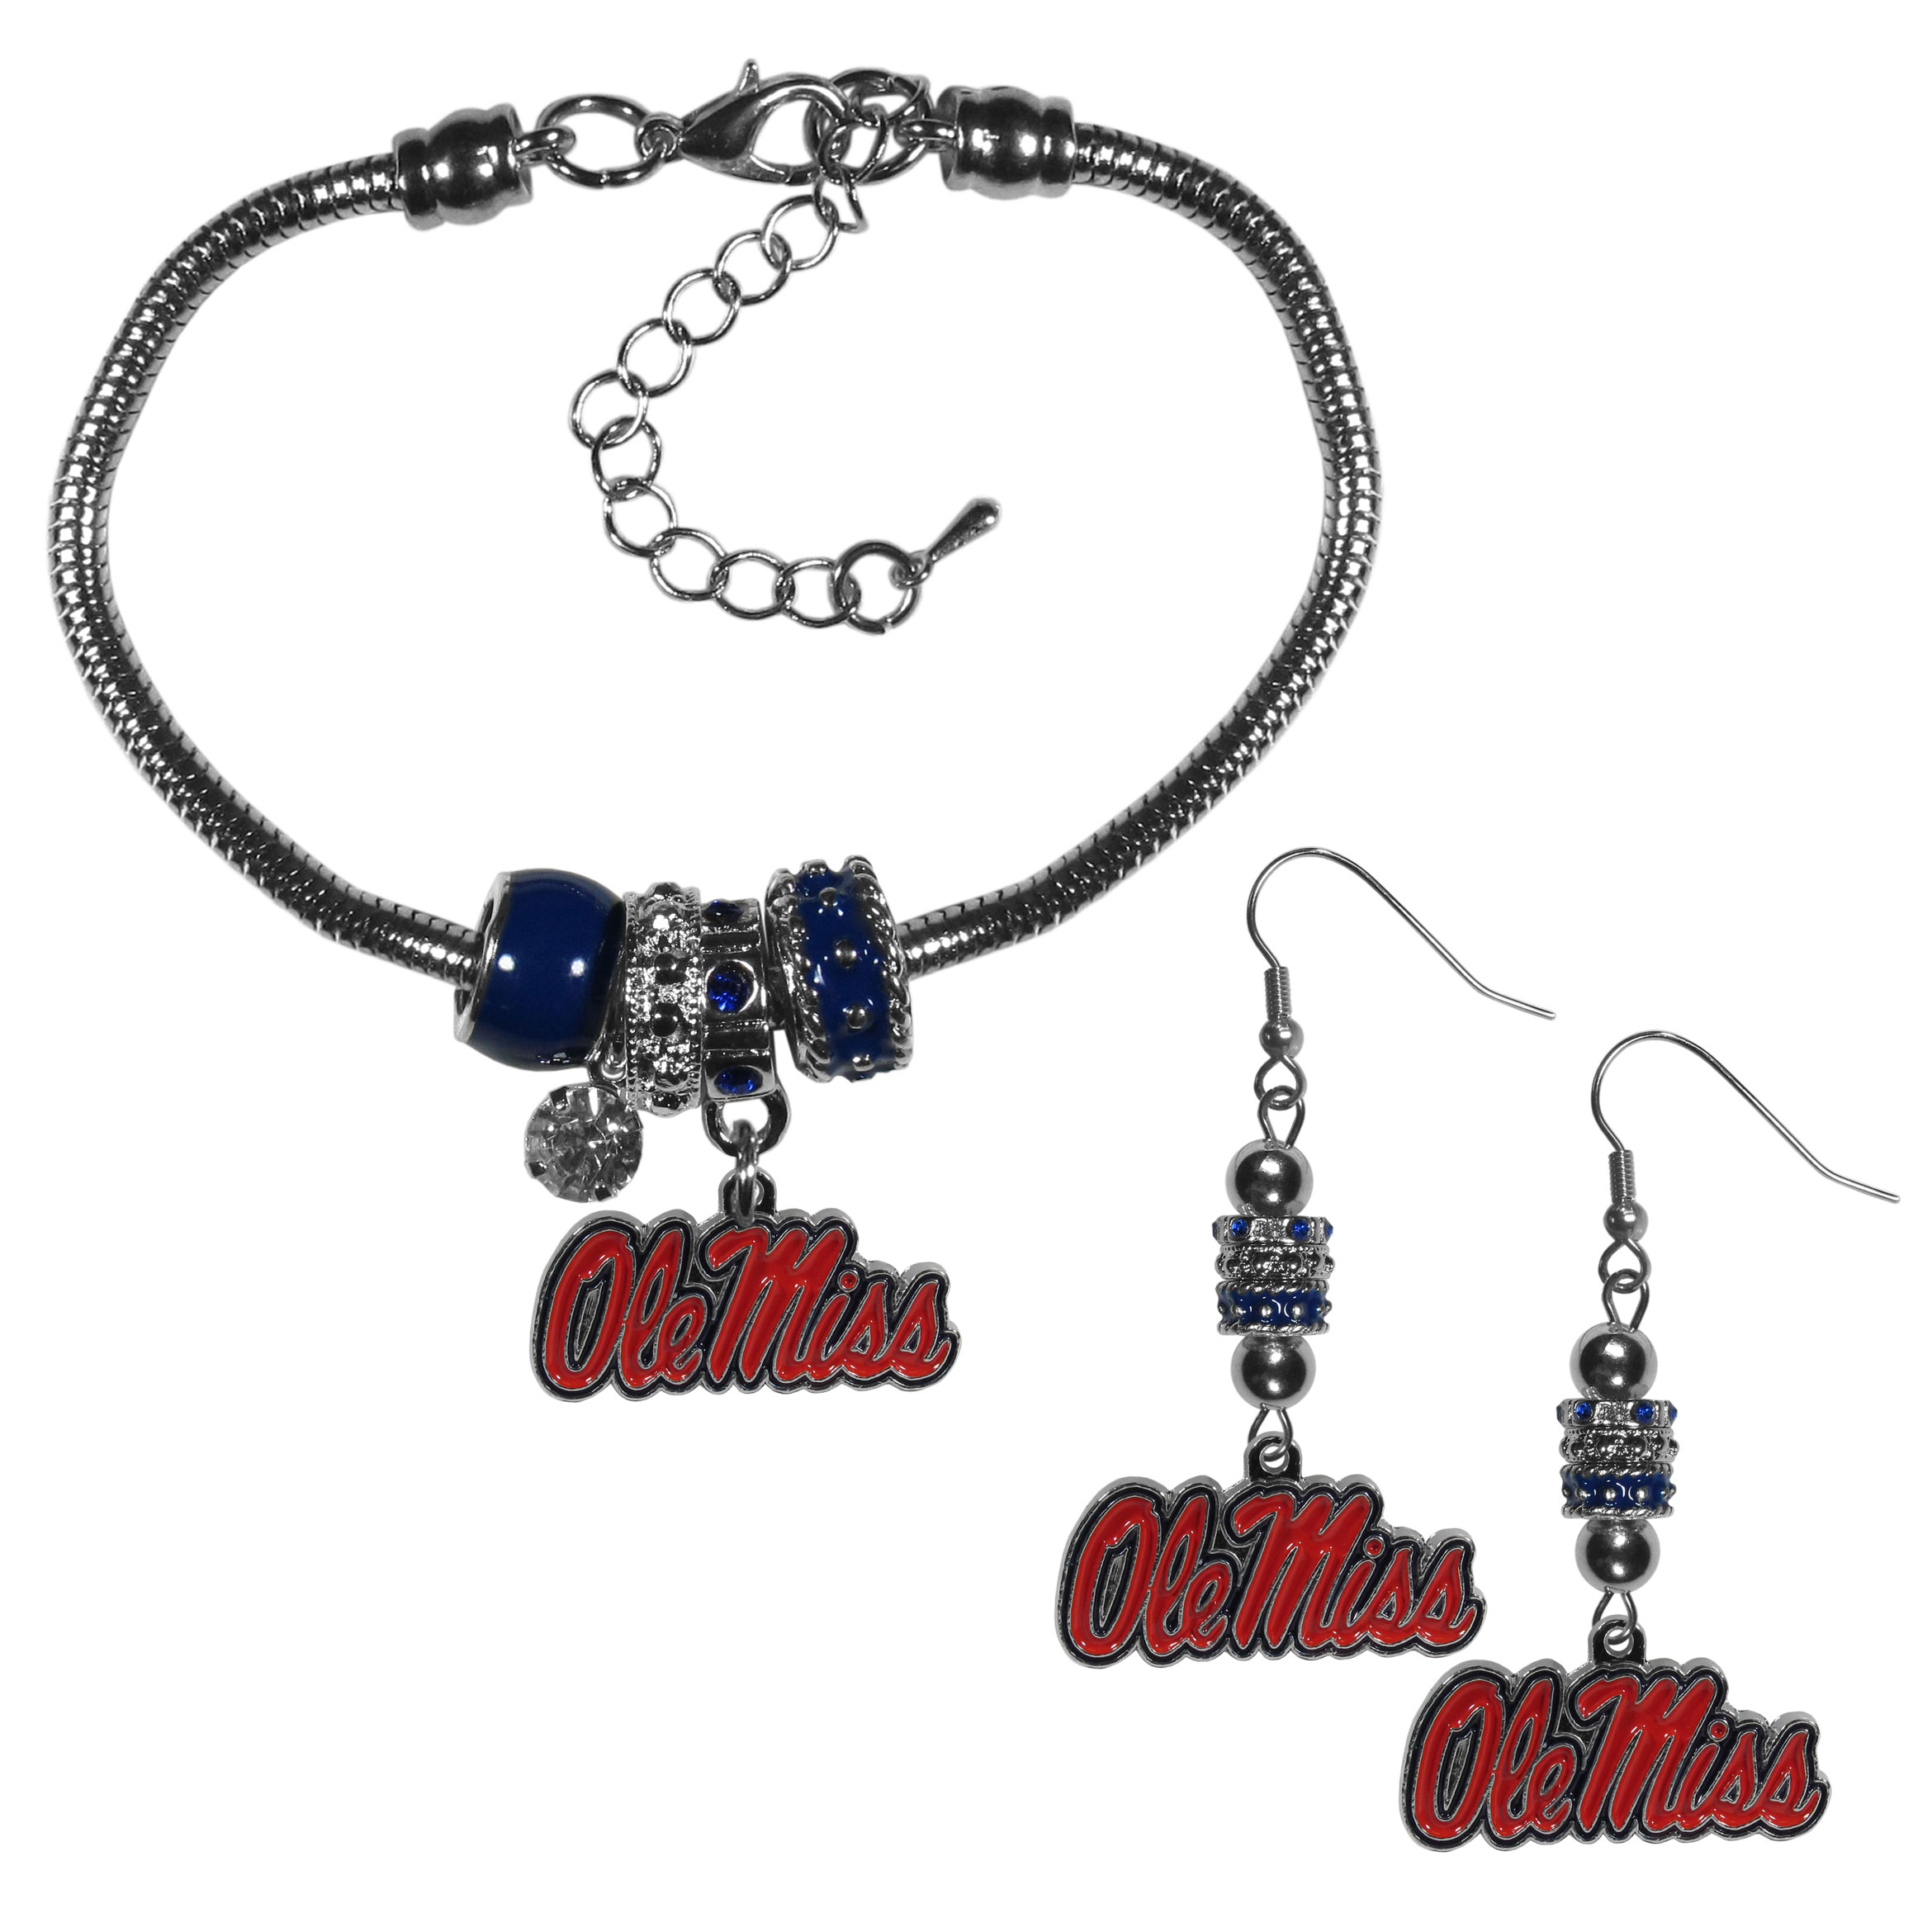 Mississippi Rebels Euro Bead Earrings and Bracelet Set - We combine the popular Euro bead style with your love of the Mississippi Rebels with this beautiful jewelry set that includes earrings and a matching bracelet. The stylish earrings feature hypoallergenic, nickel free fishhook posts and 3 team colored Euro beads and a metal team charm. The matching snake chain bracelet is 7.5 inches long with a 2 inch extender and 4 Euro beads with a rhinestone charm and team charm.